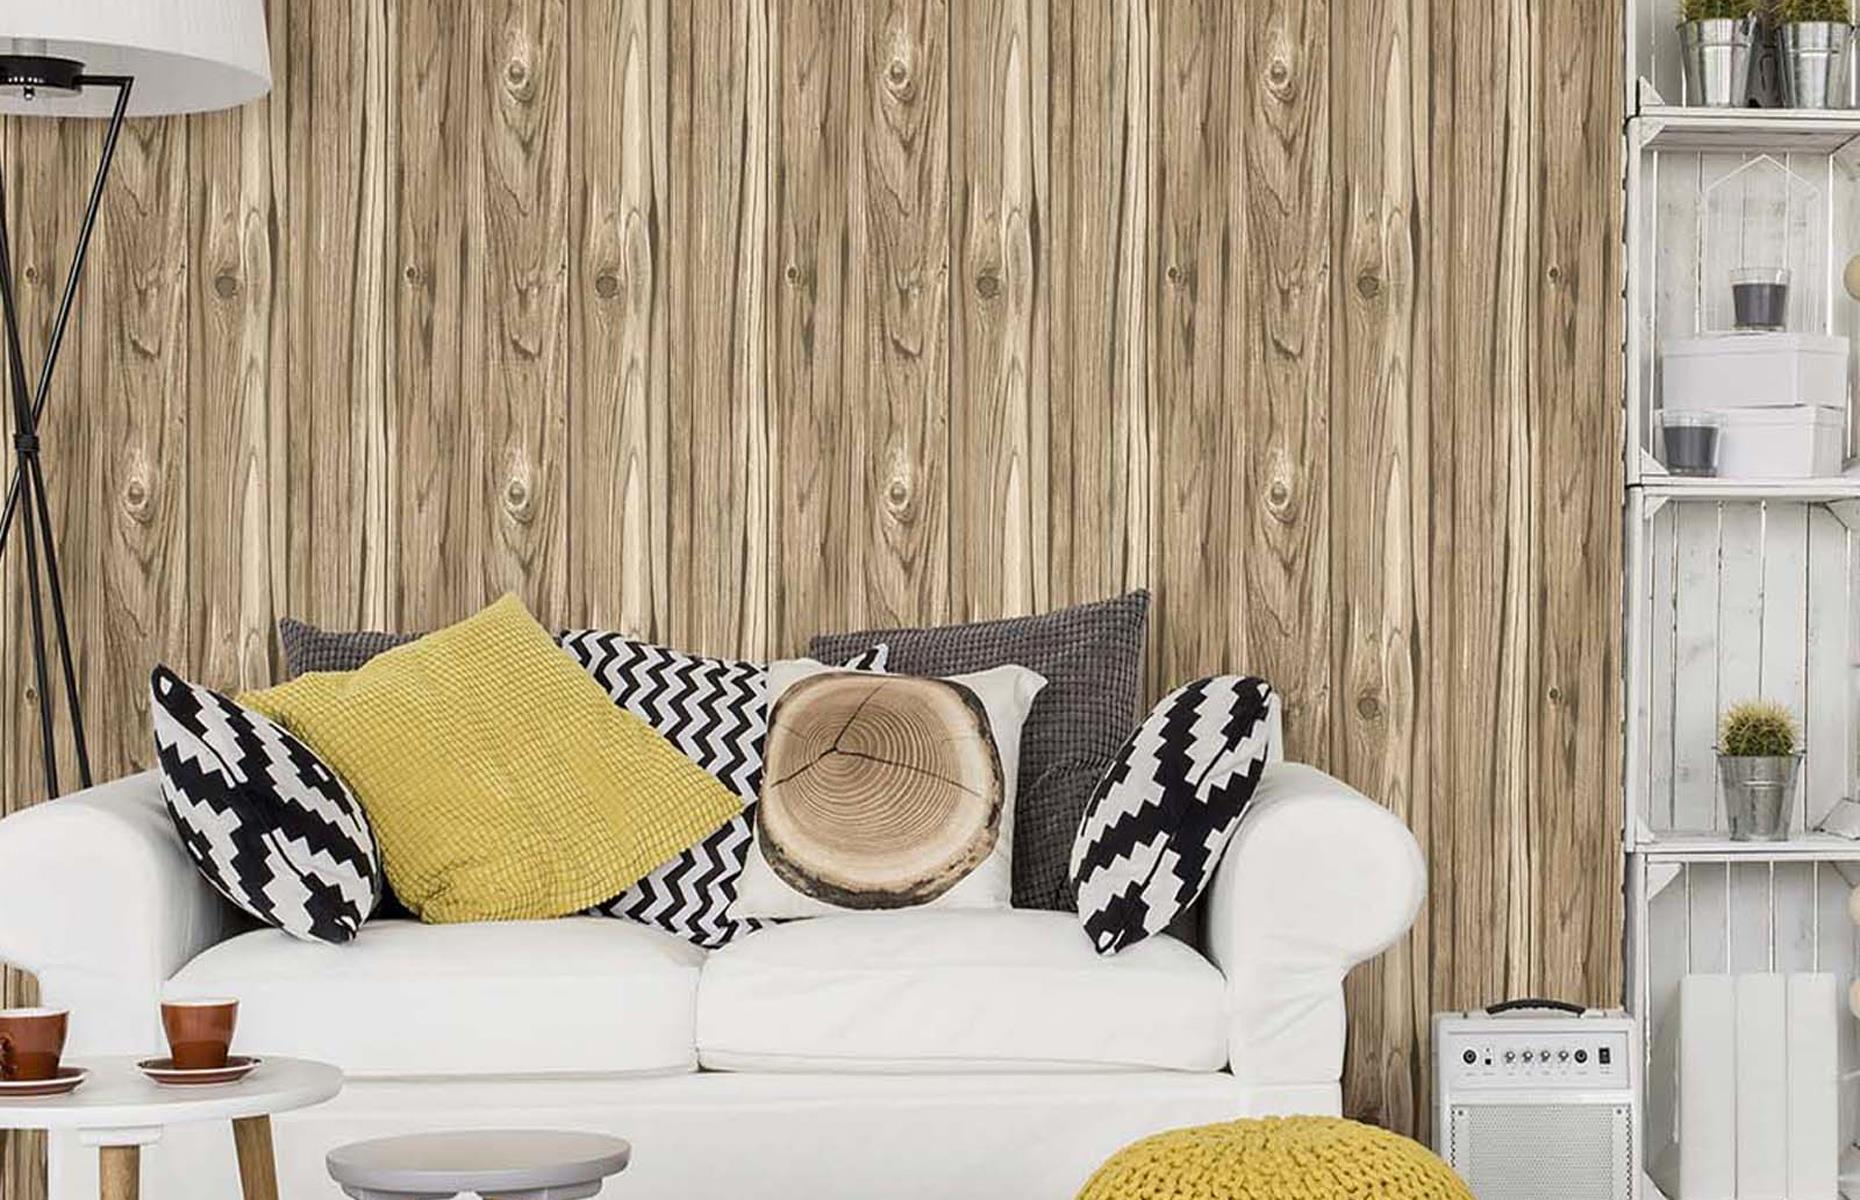 12 stunning wallpaper ideas to give your decor the wow-factor